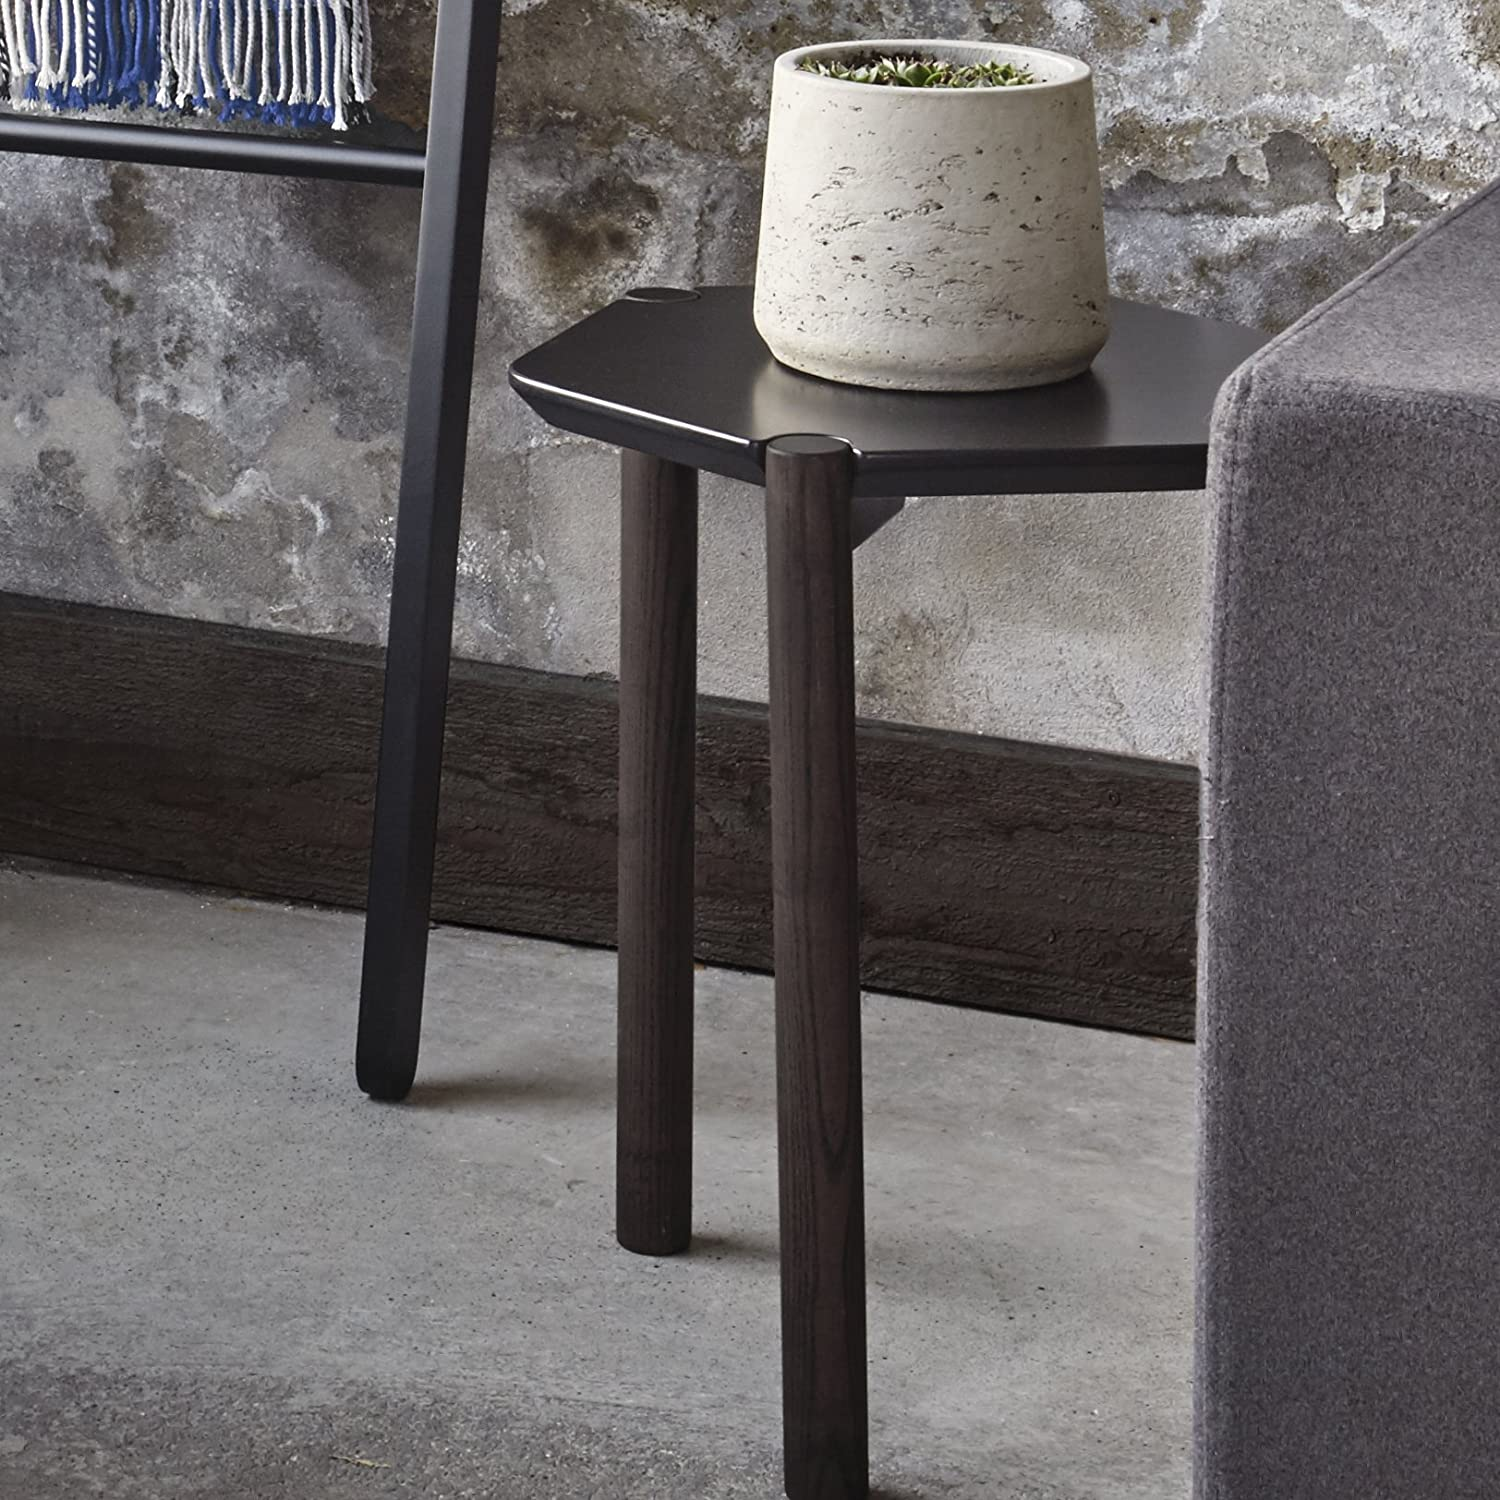 Copper//Black Metal Sagebrook Home 11025 Metal Accent Table 16.5 x 16.5 x 27.5 Inches